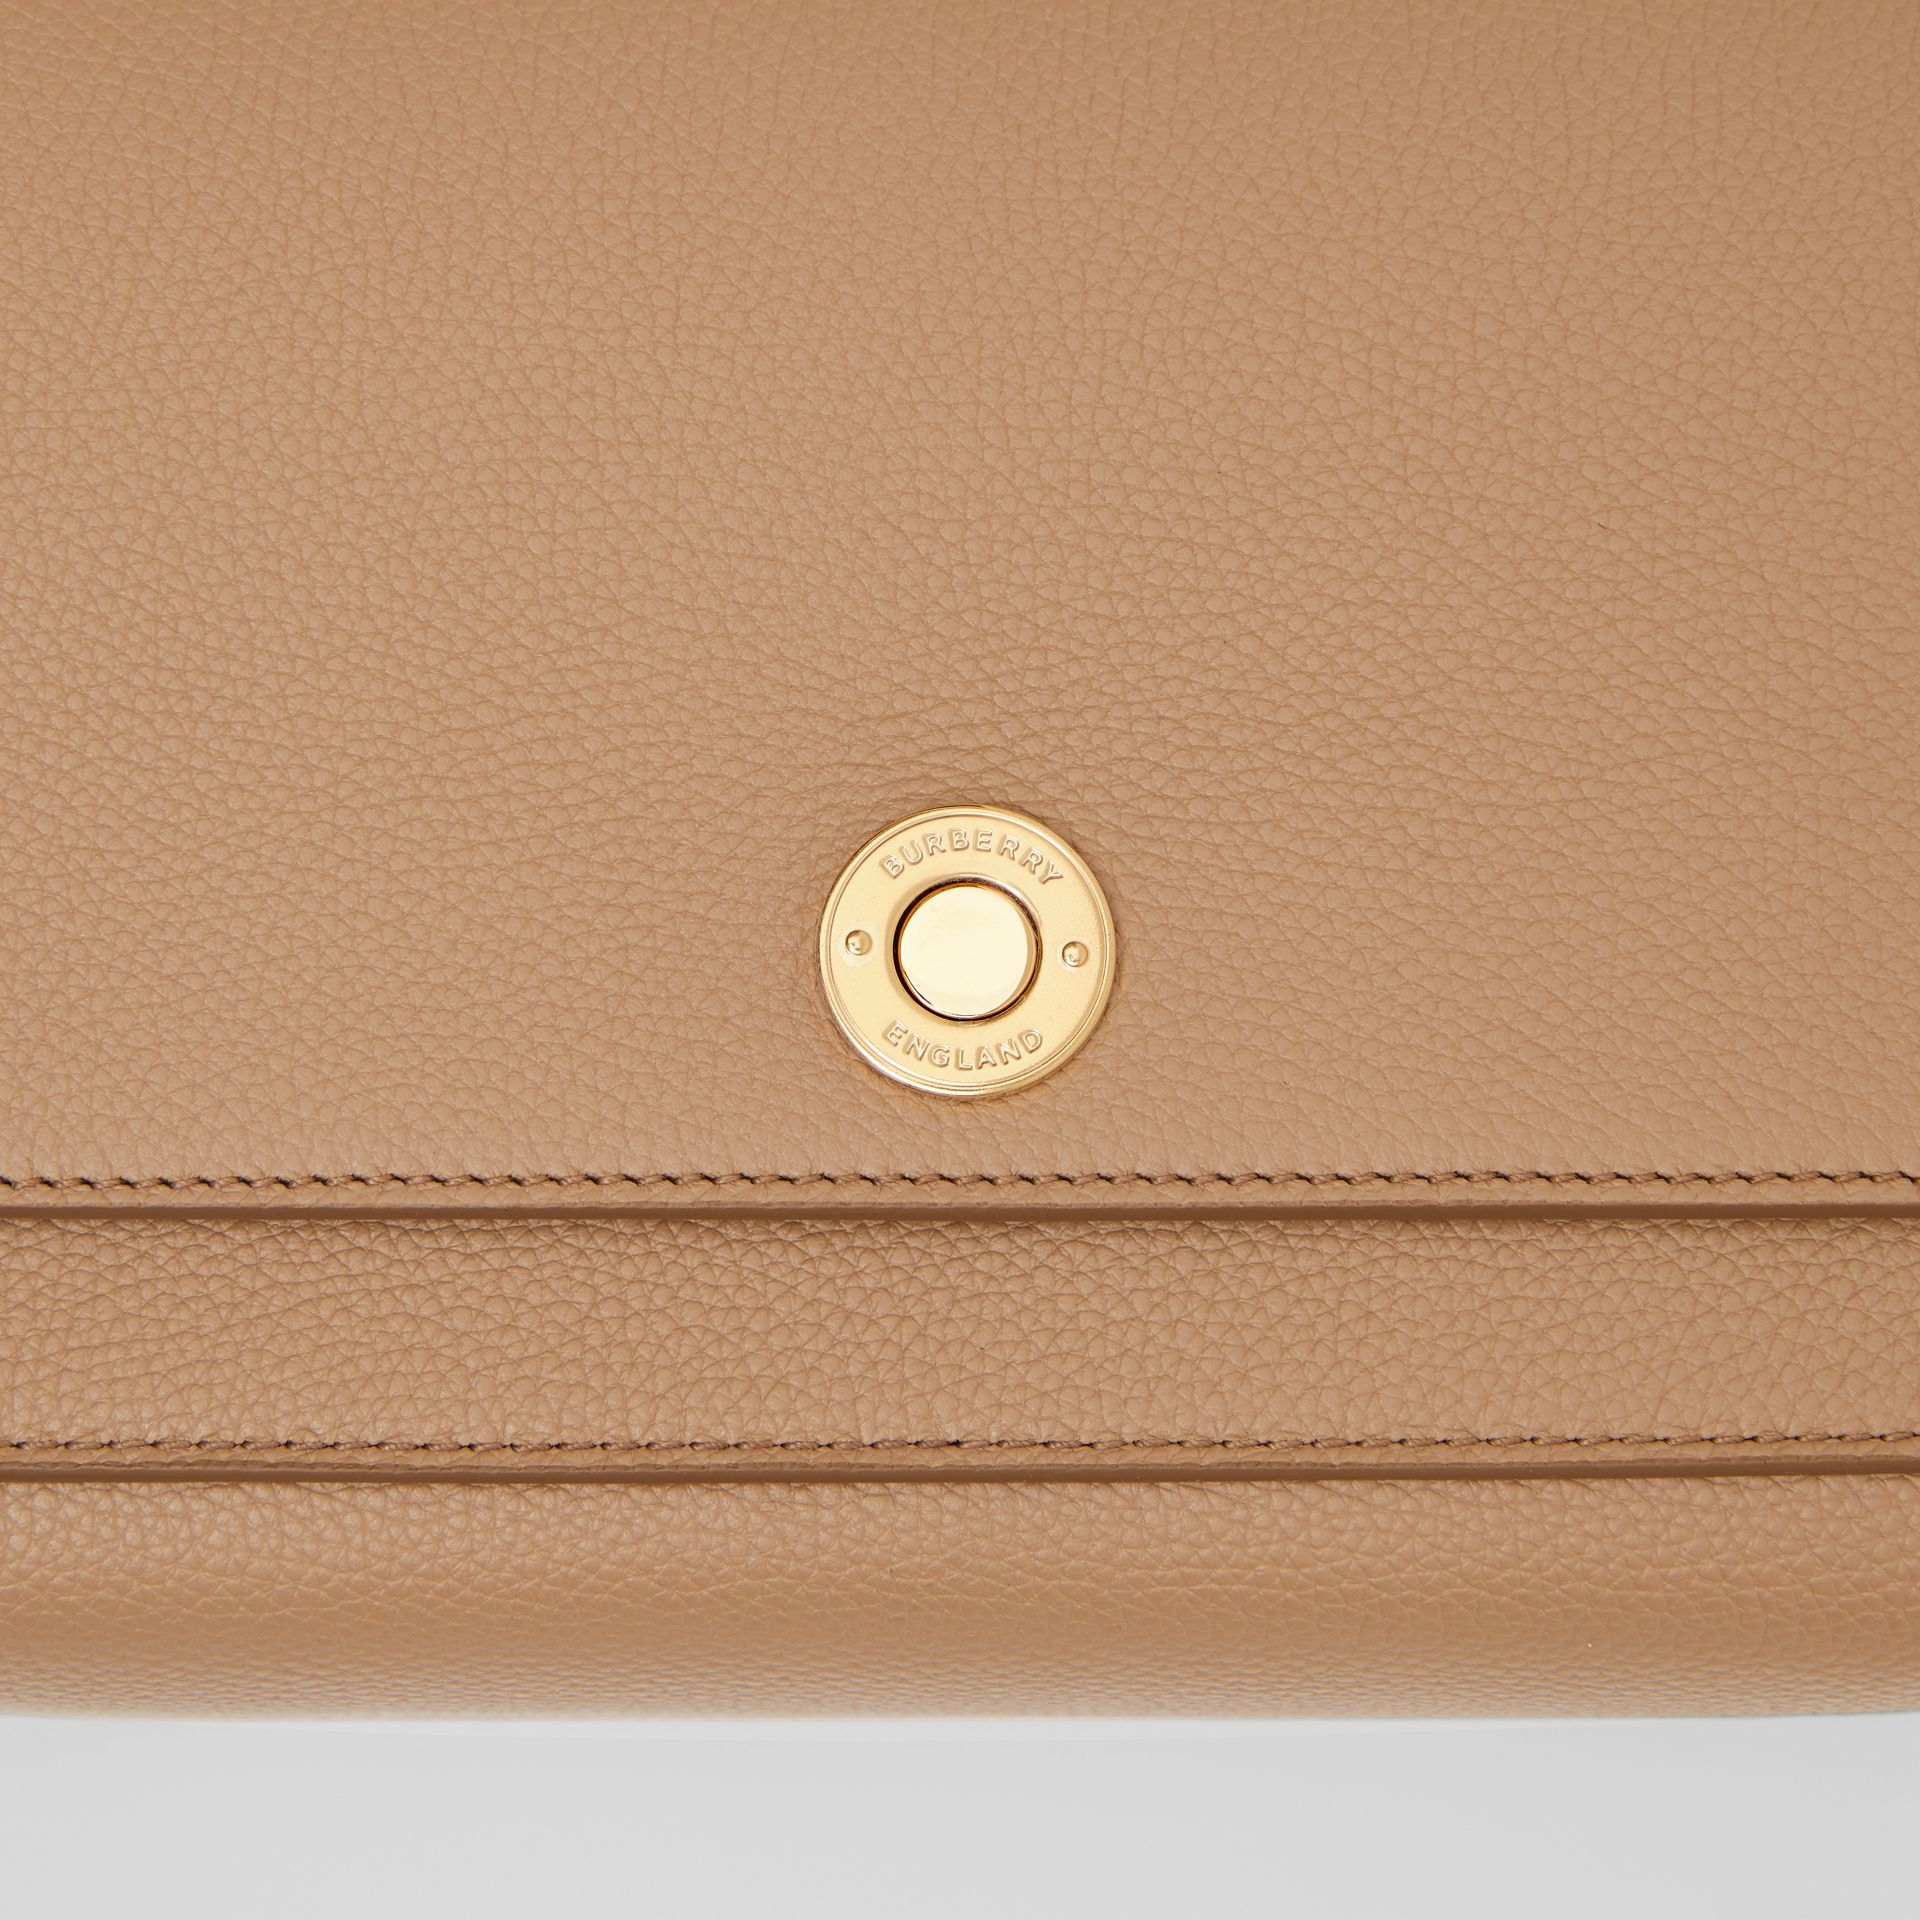 Grainy Leather Note Crossbody Bag in Camel - Women | Burberry Singapore - gallery image 1